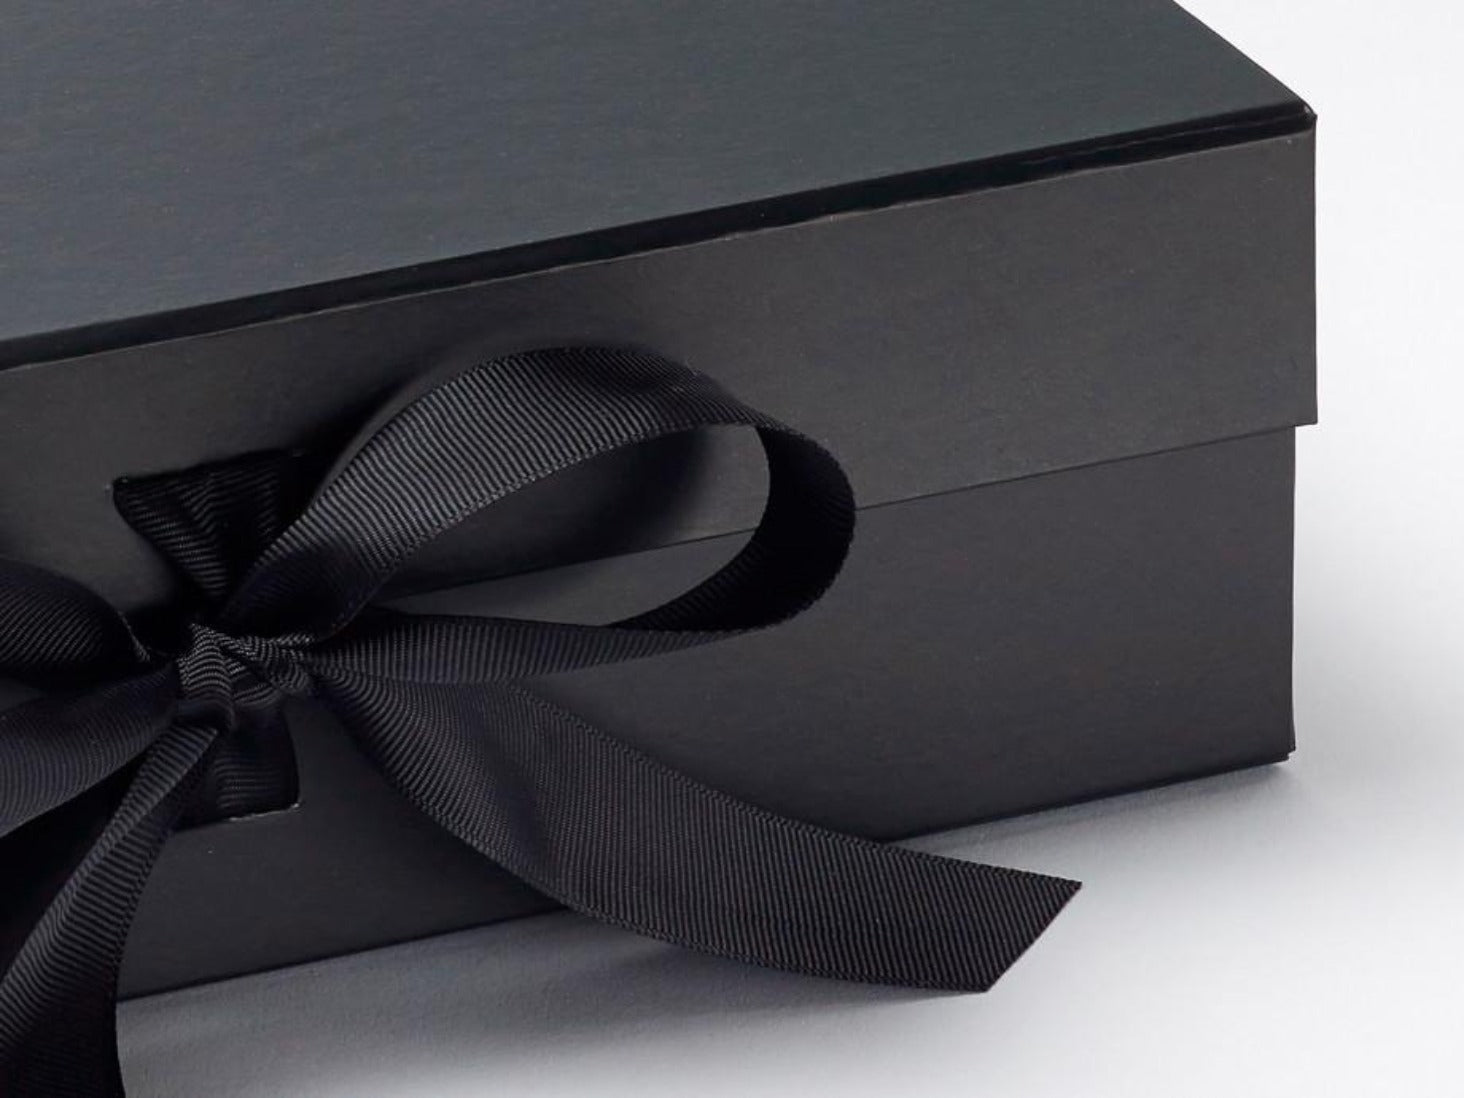 Luxury Black Large Folding Gift Box With Ribbon From